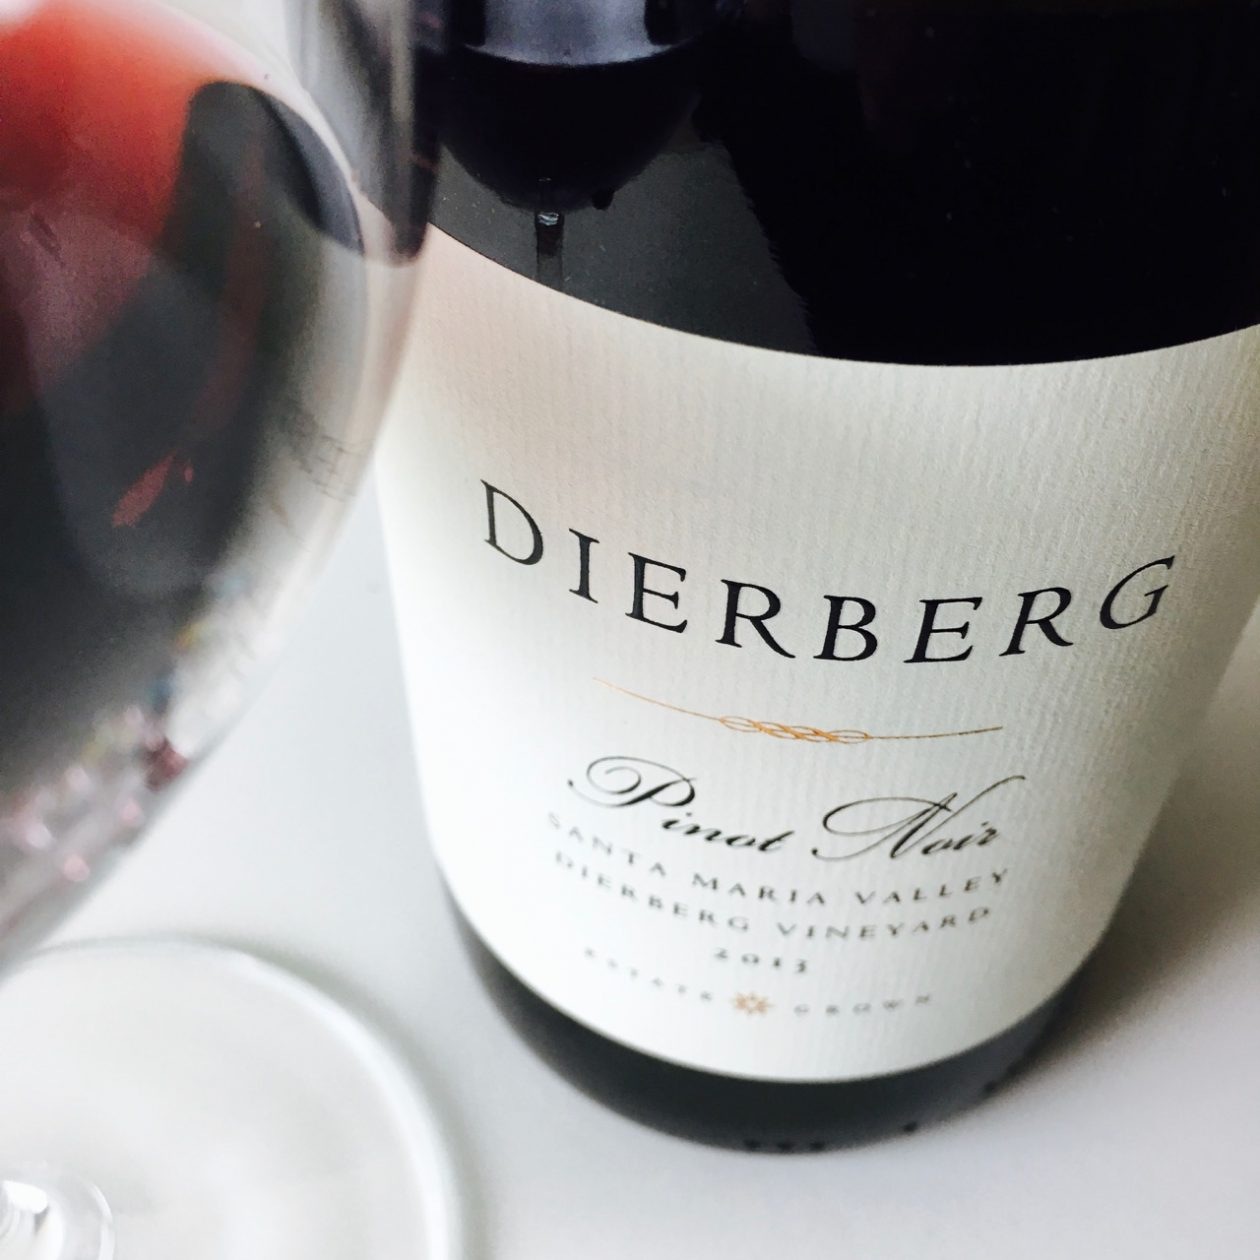 2013 Dierberg Vineyard Pinot Noir Estate Santa Maria Valley